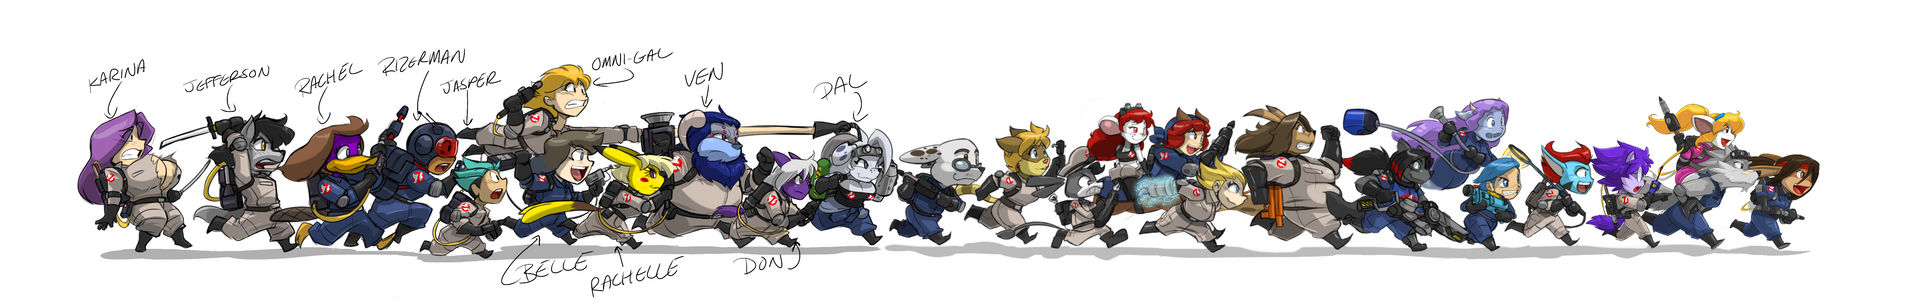 Ghostbusters Lineup - 22